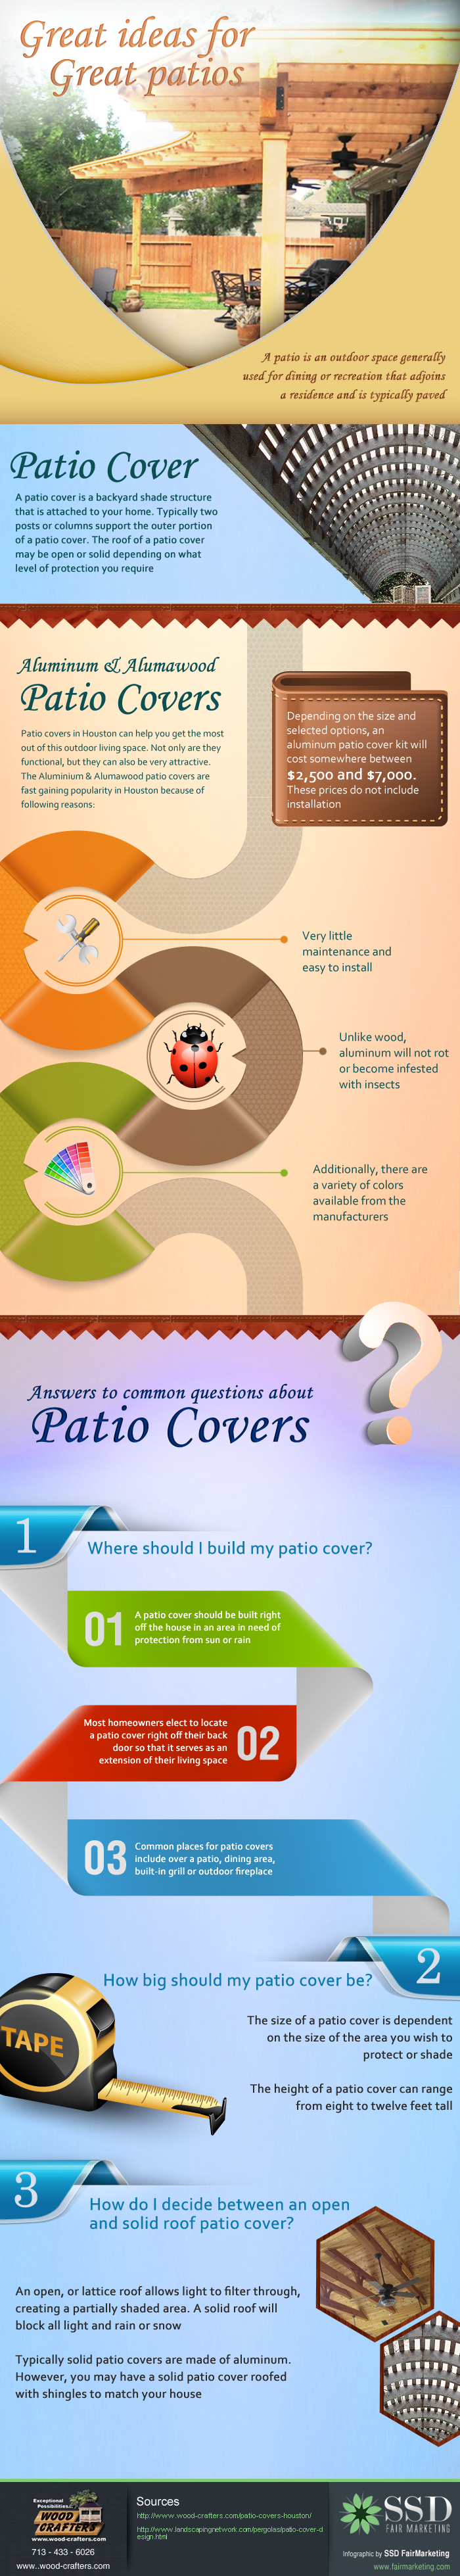 Patio Covers Houston Infographic March 2014